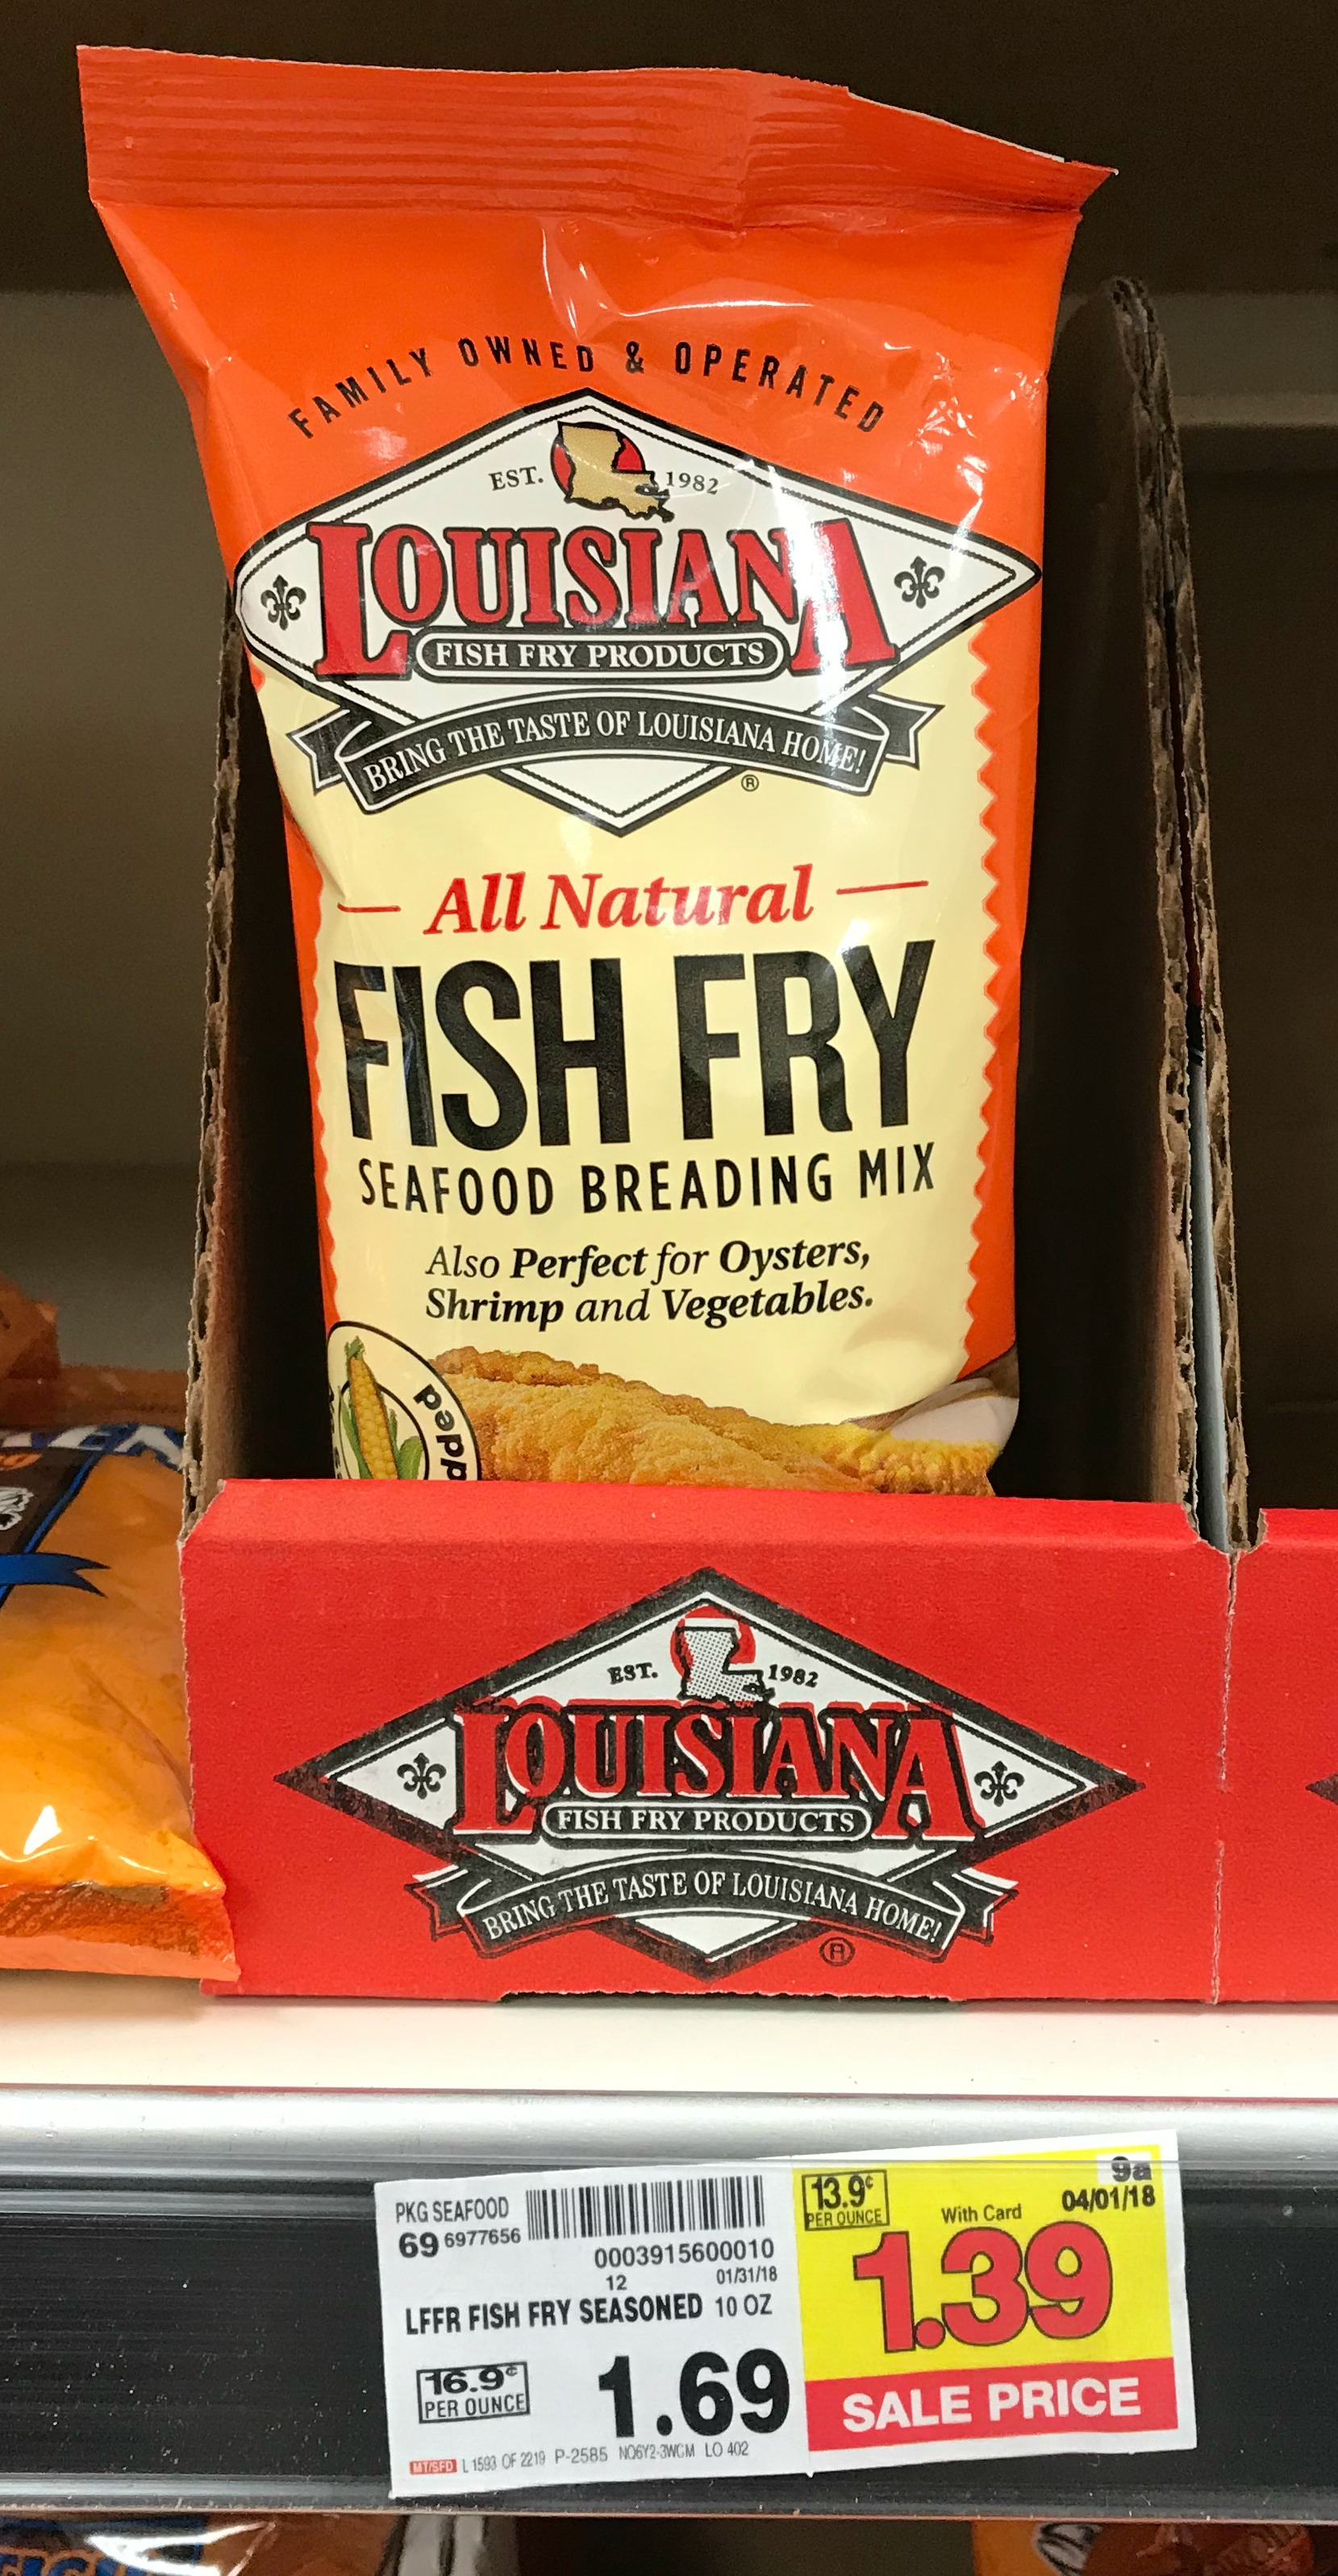 New louisiana products coupon fish fry seafood breading for Louisiana fish fry